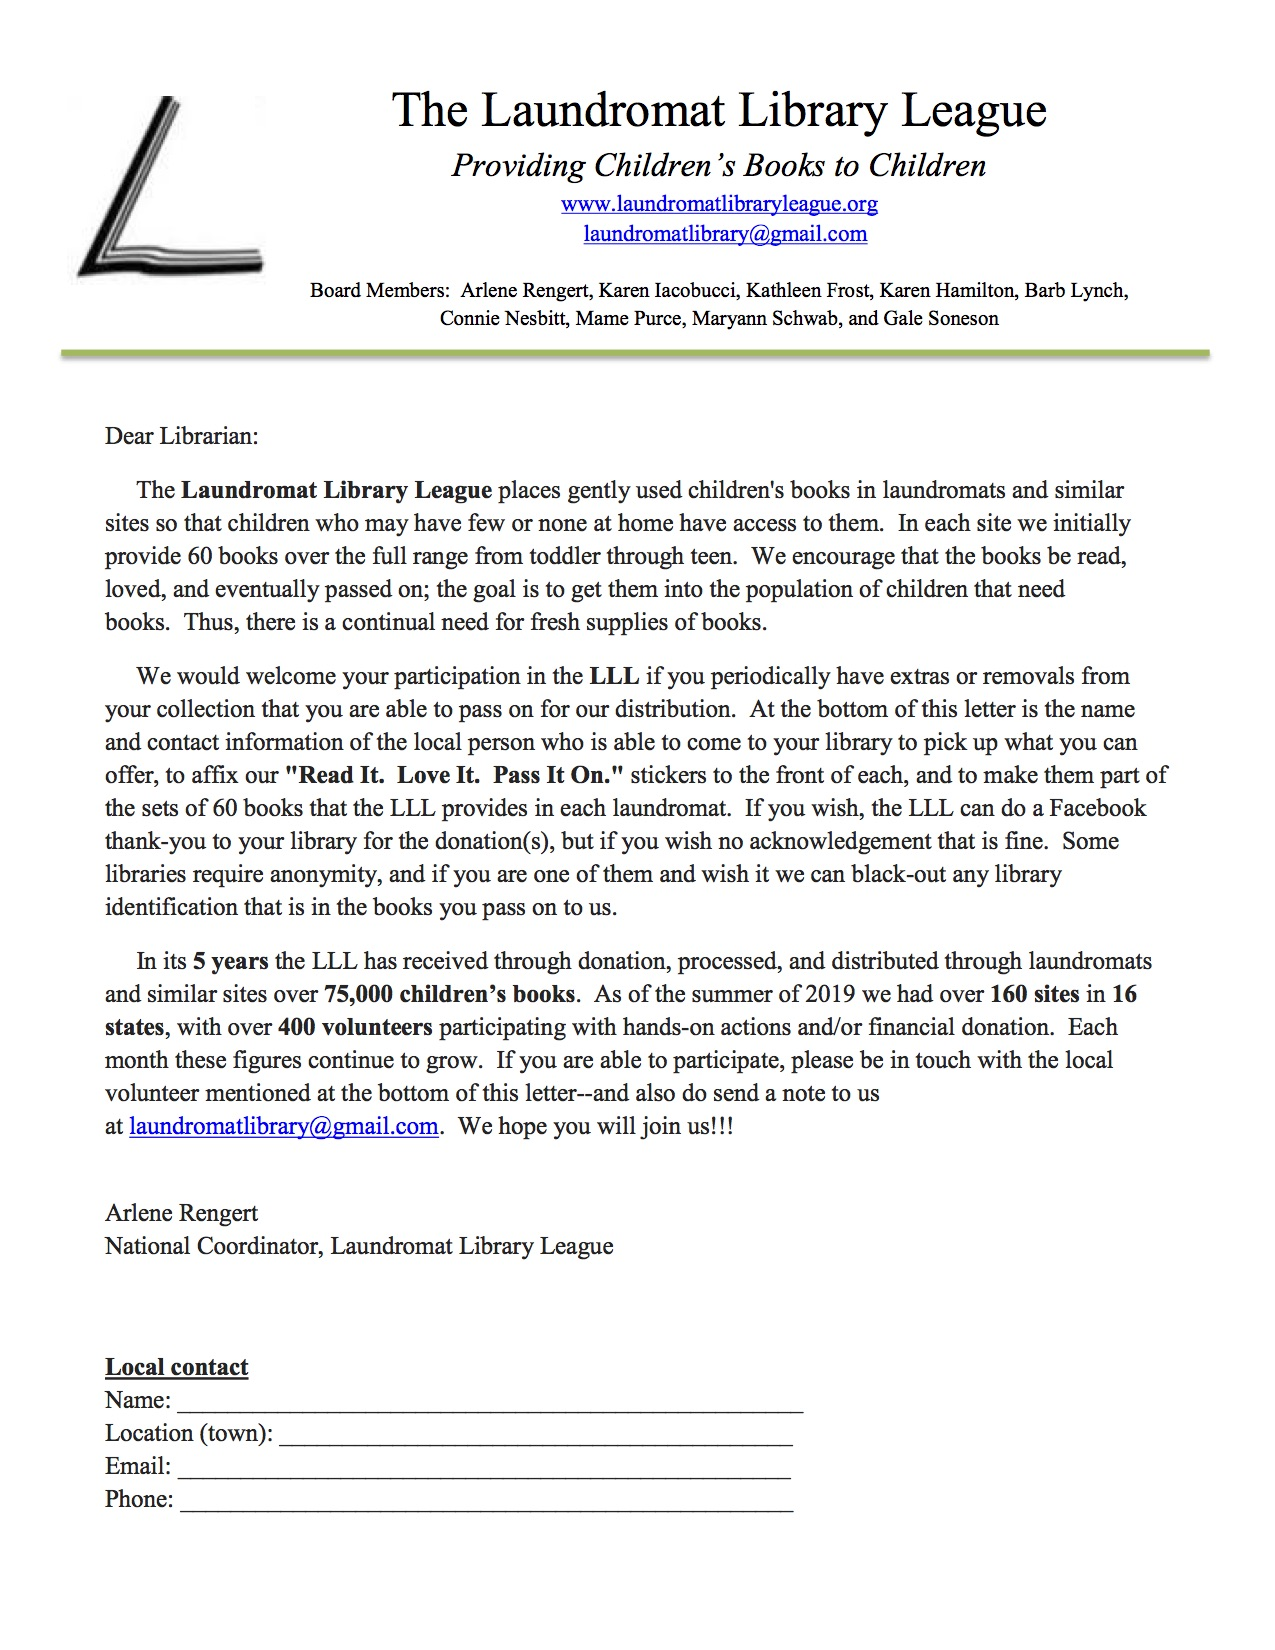 LLL letter to Public Librarians pdf.jpg